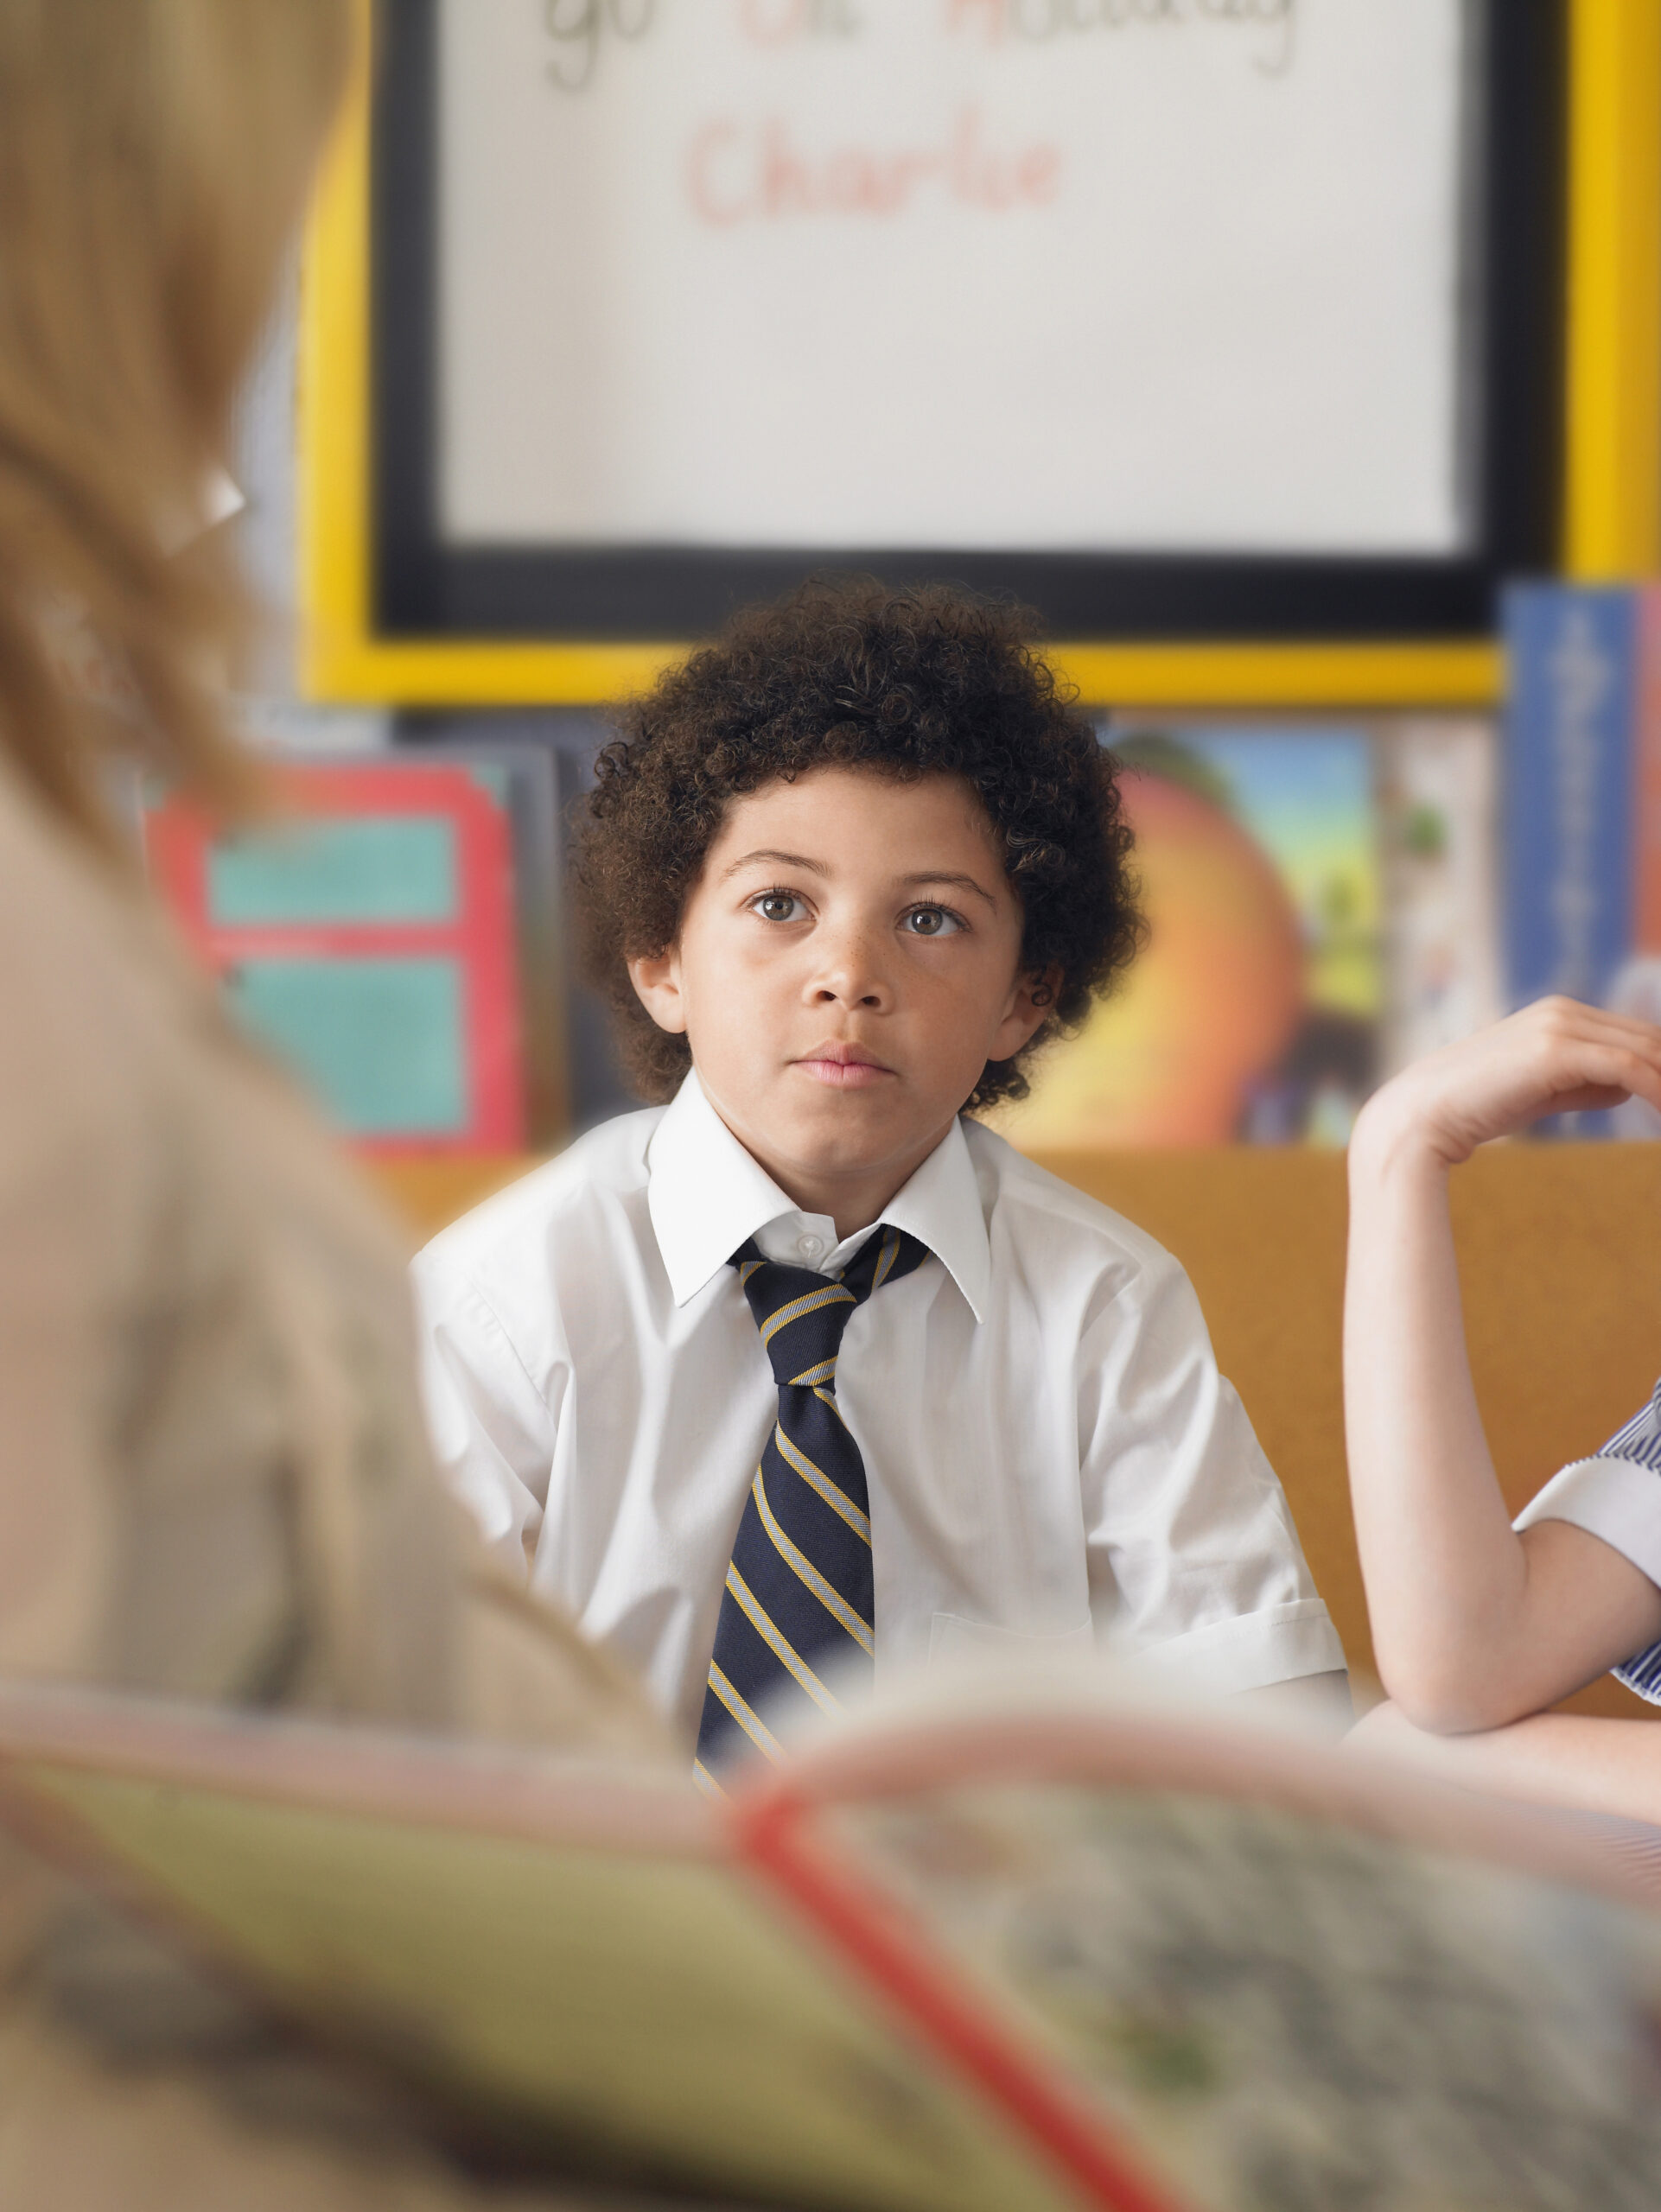 Elementary schoolboy listening to teacher reading in classroom